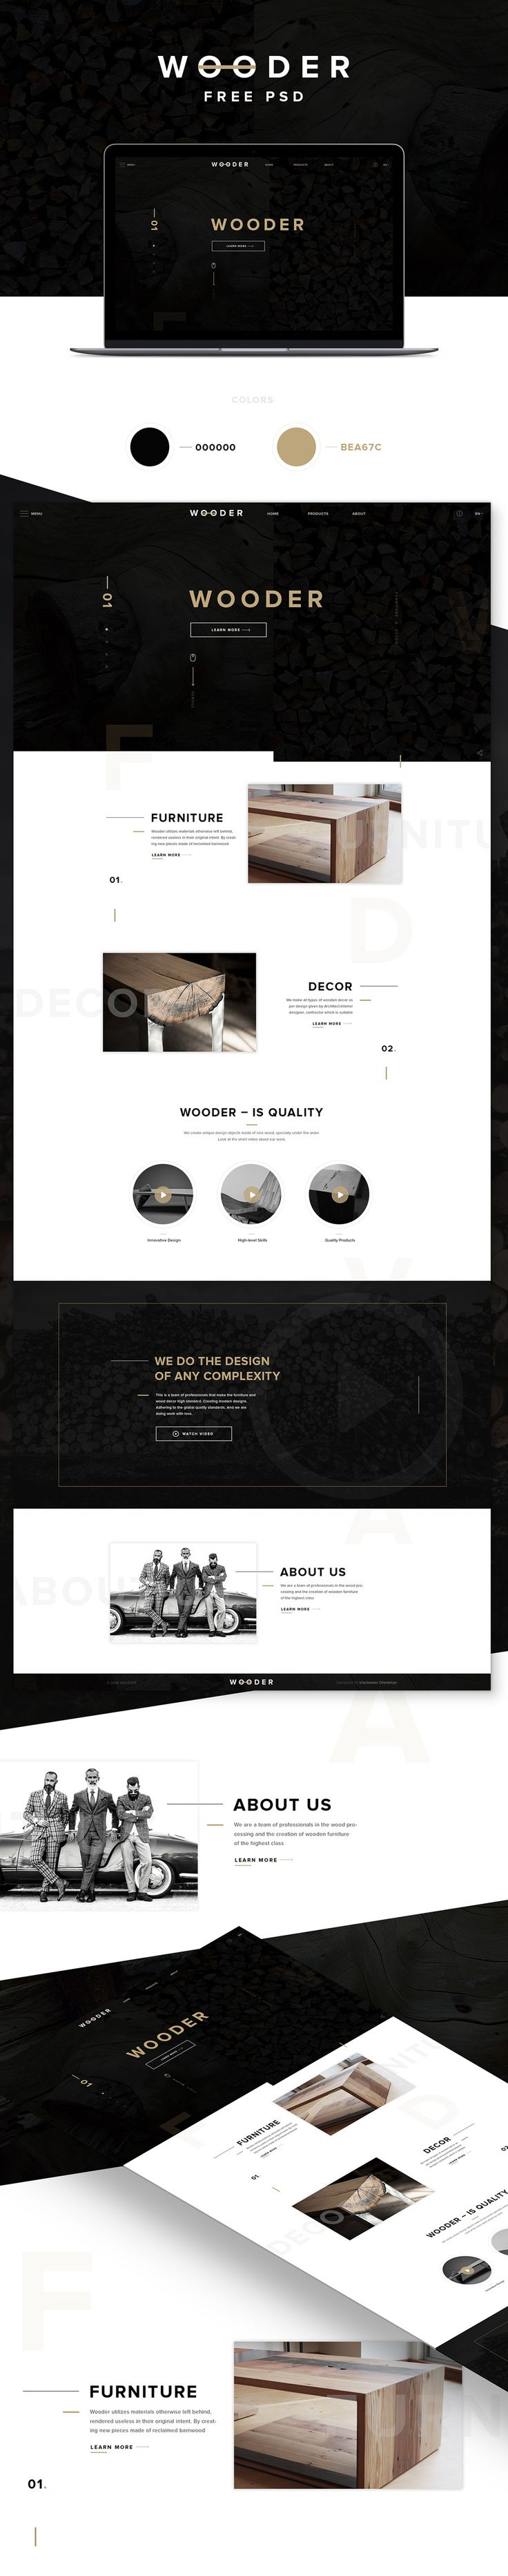 WOODER-Free-PSD-Template